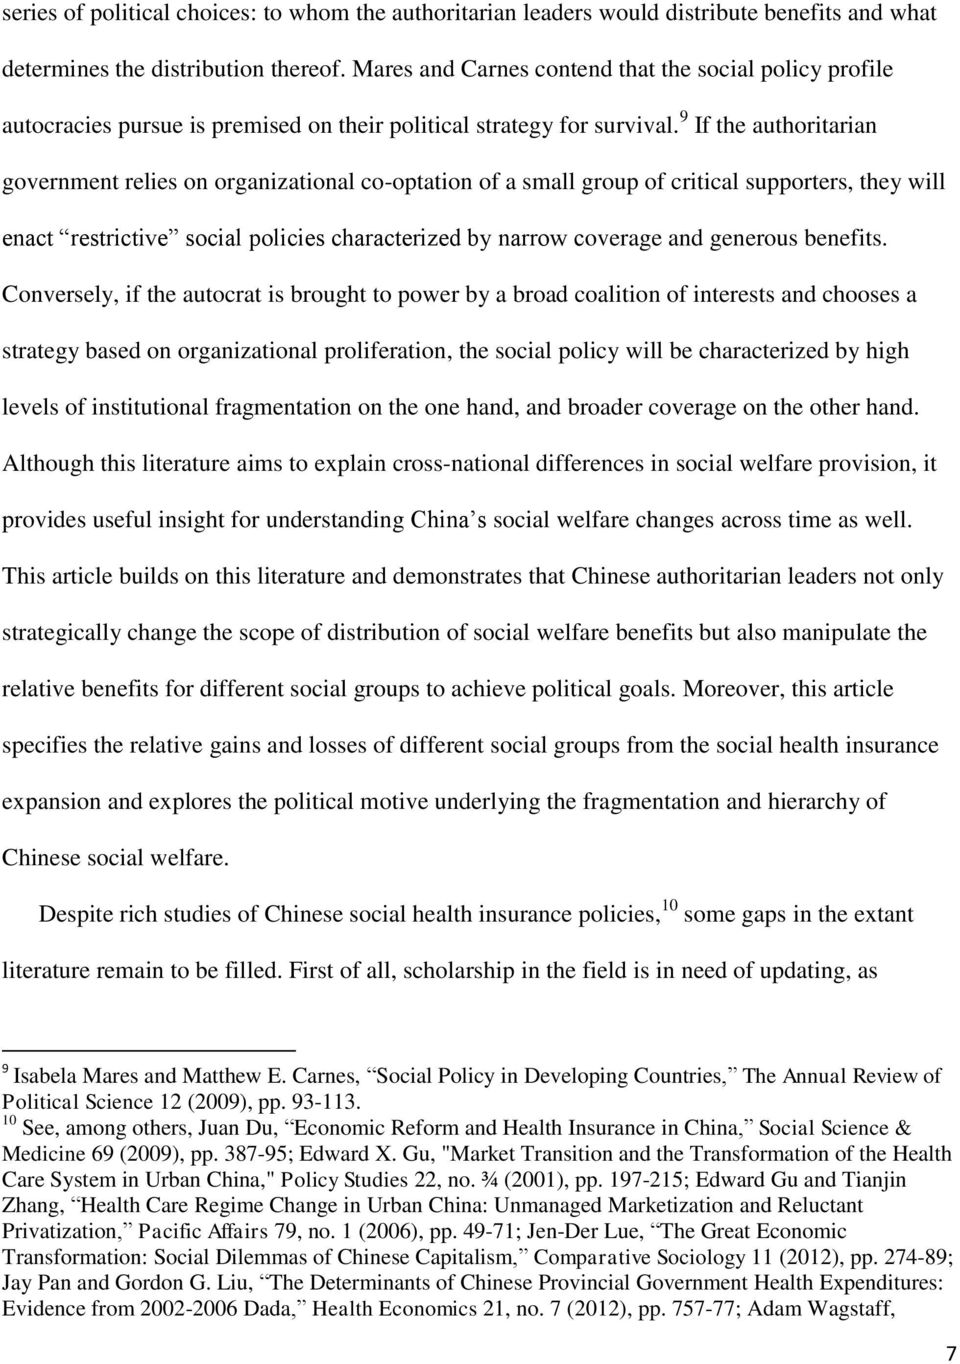 9 If the authoritarian government relies on organizational co-optation of a small group of critical supporters, they will enact restrictive social policies characterized by narrow coverage and